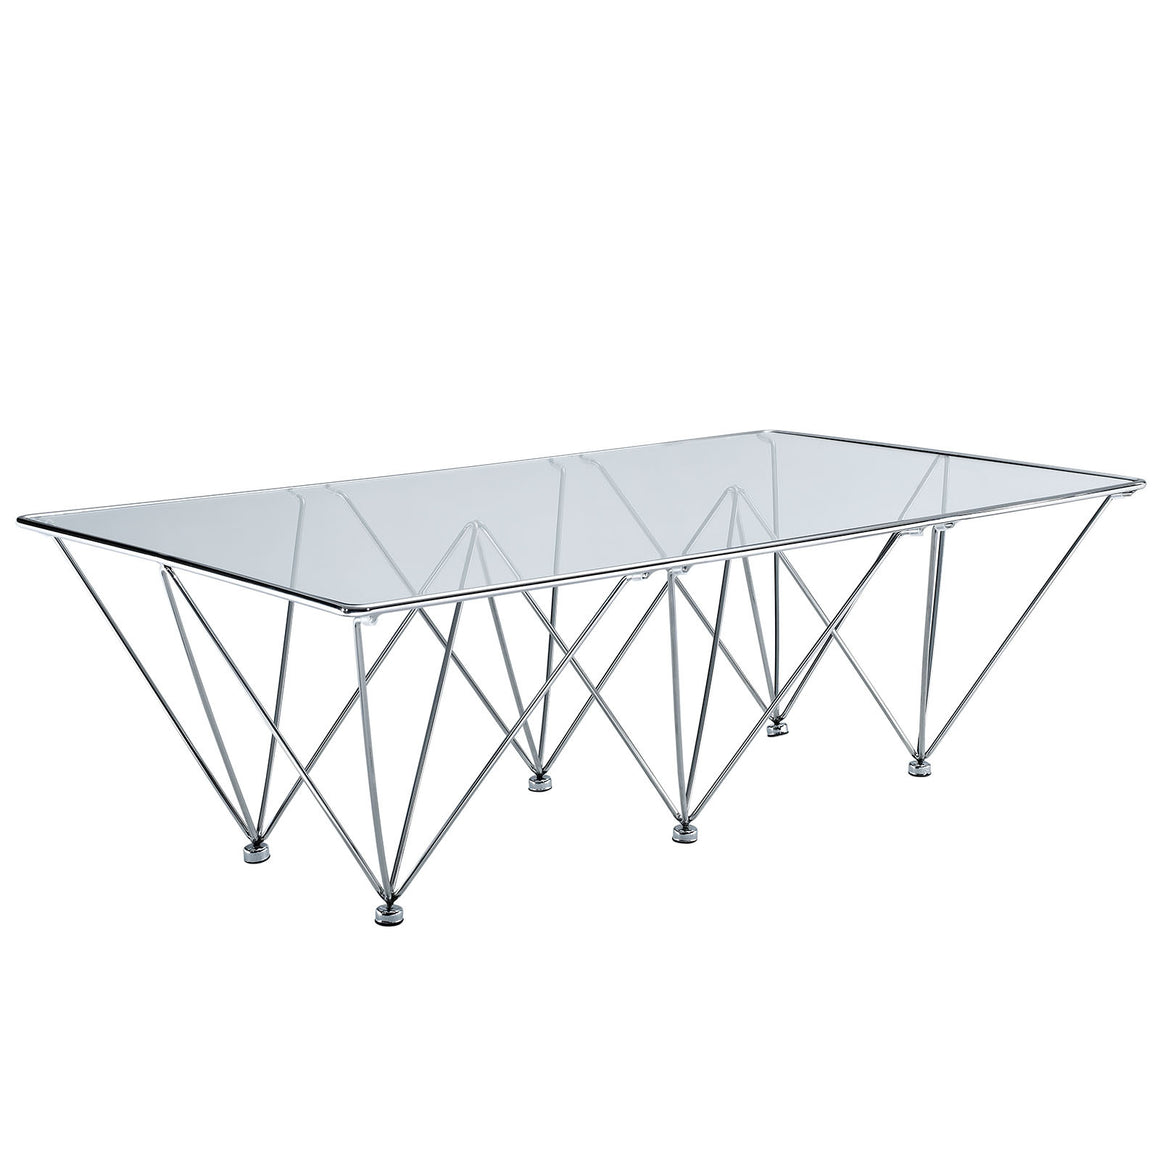 Prism Rectangle Coffee Table - taylor ray decor